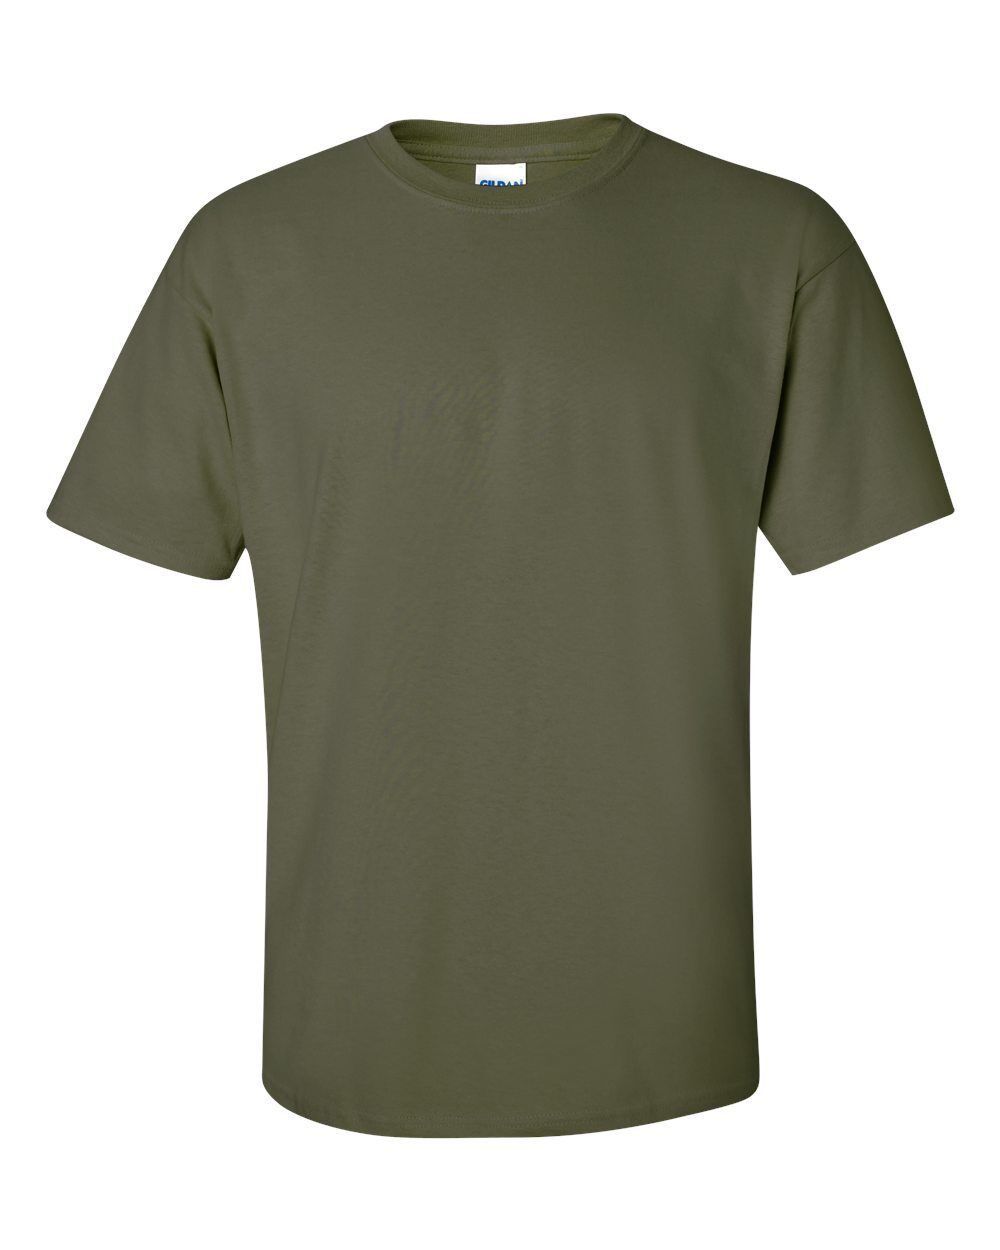 Military Green GILDAN Men's Plain 100% Cotton Blank T-shirt Tee BULK